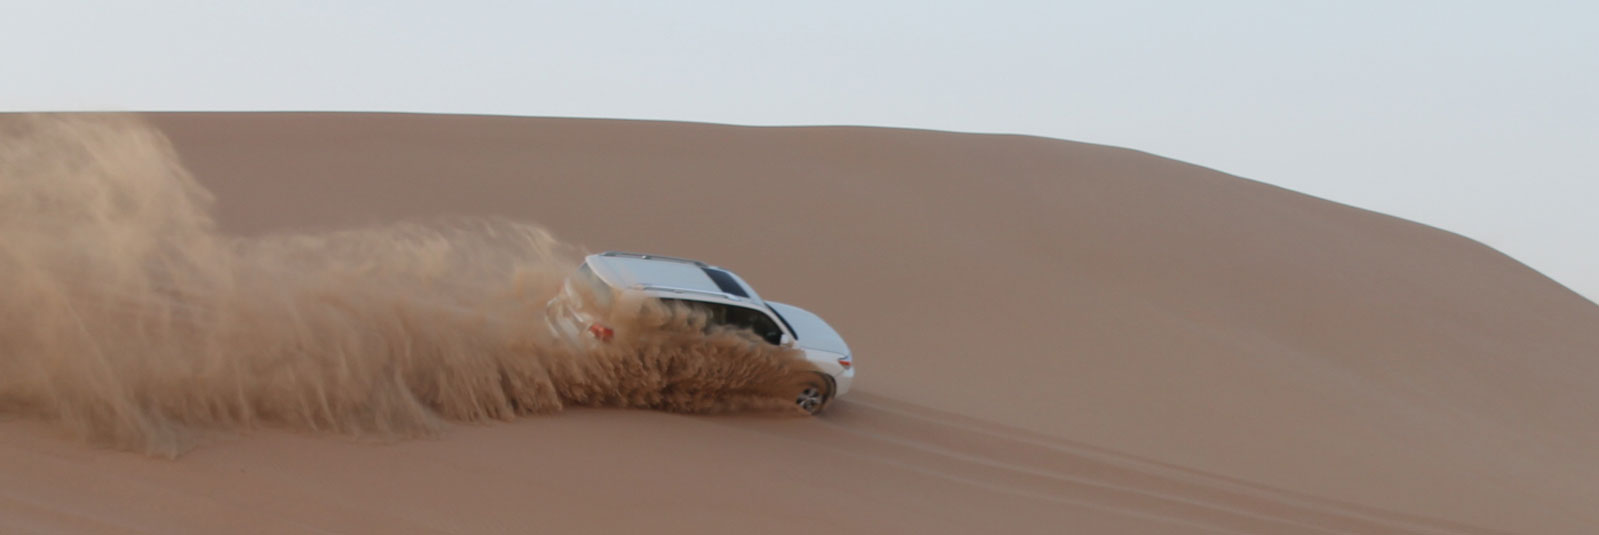 Desert-safari-in-abu-dhabi